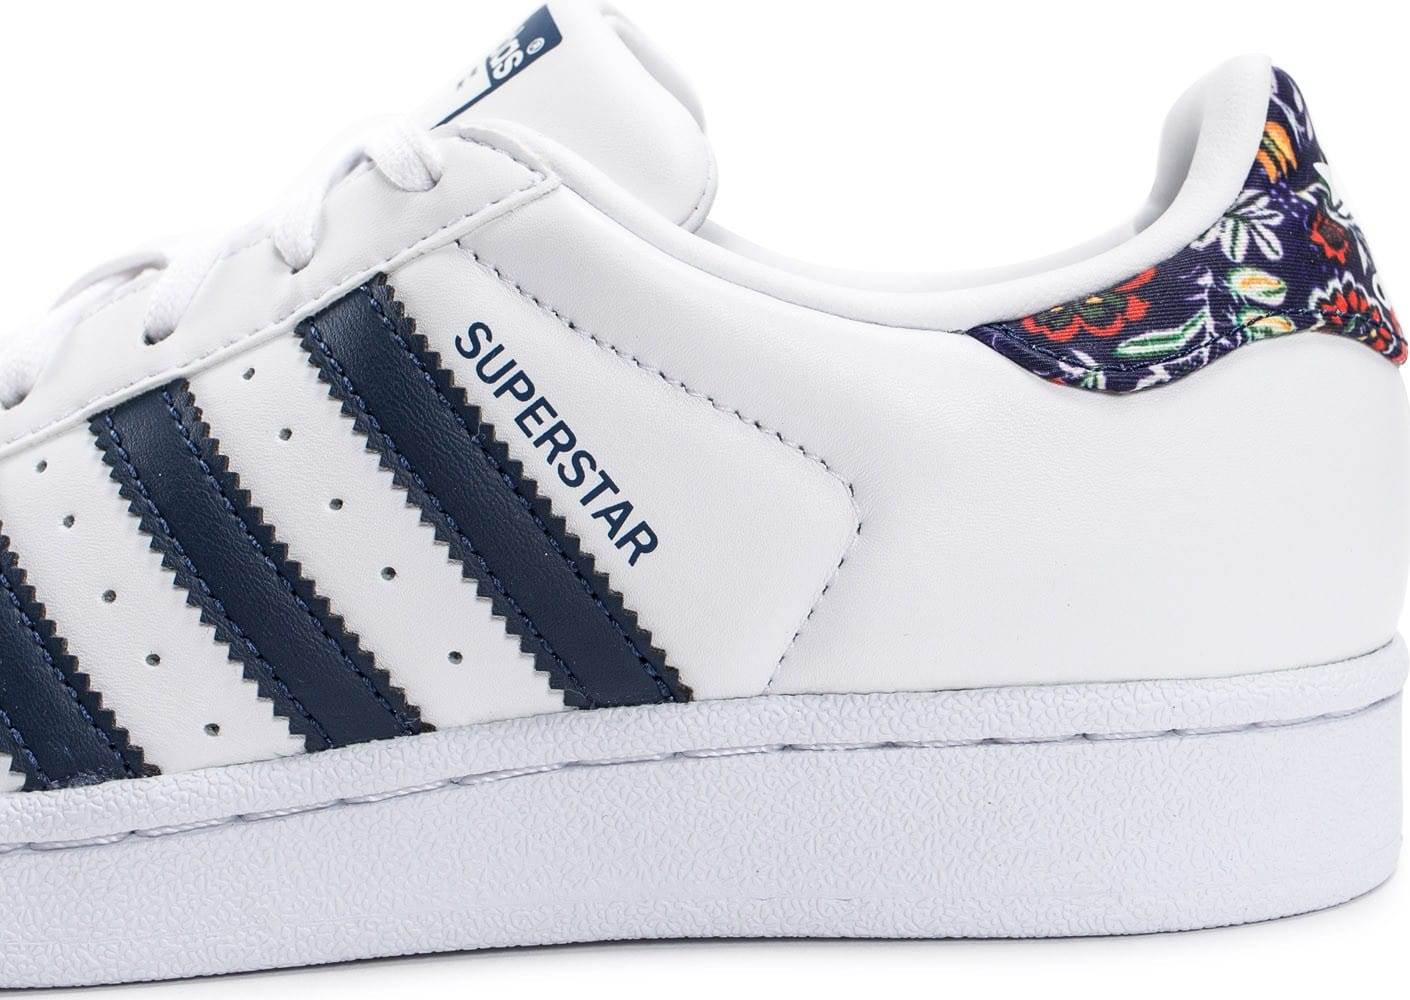 huge selection of 0890c 9f728 ... Chaussures adidas Superstar Farm Company blanche et bleu marine vue  dessus